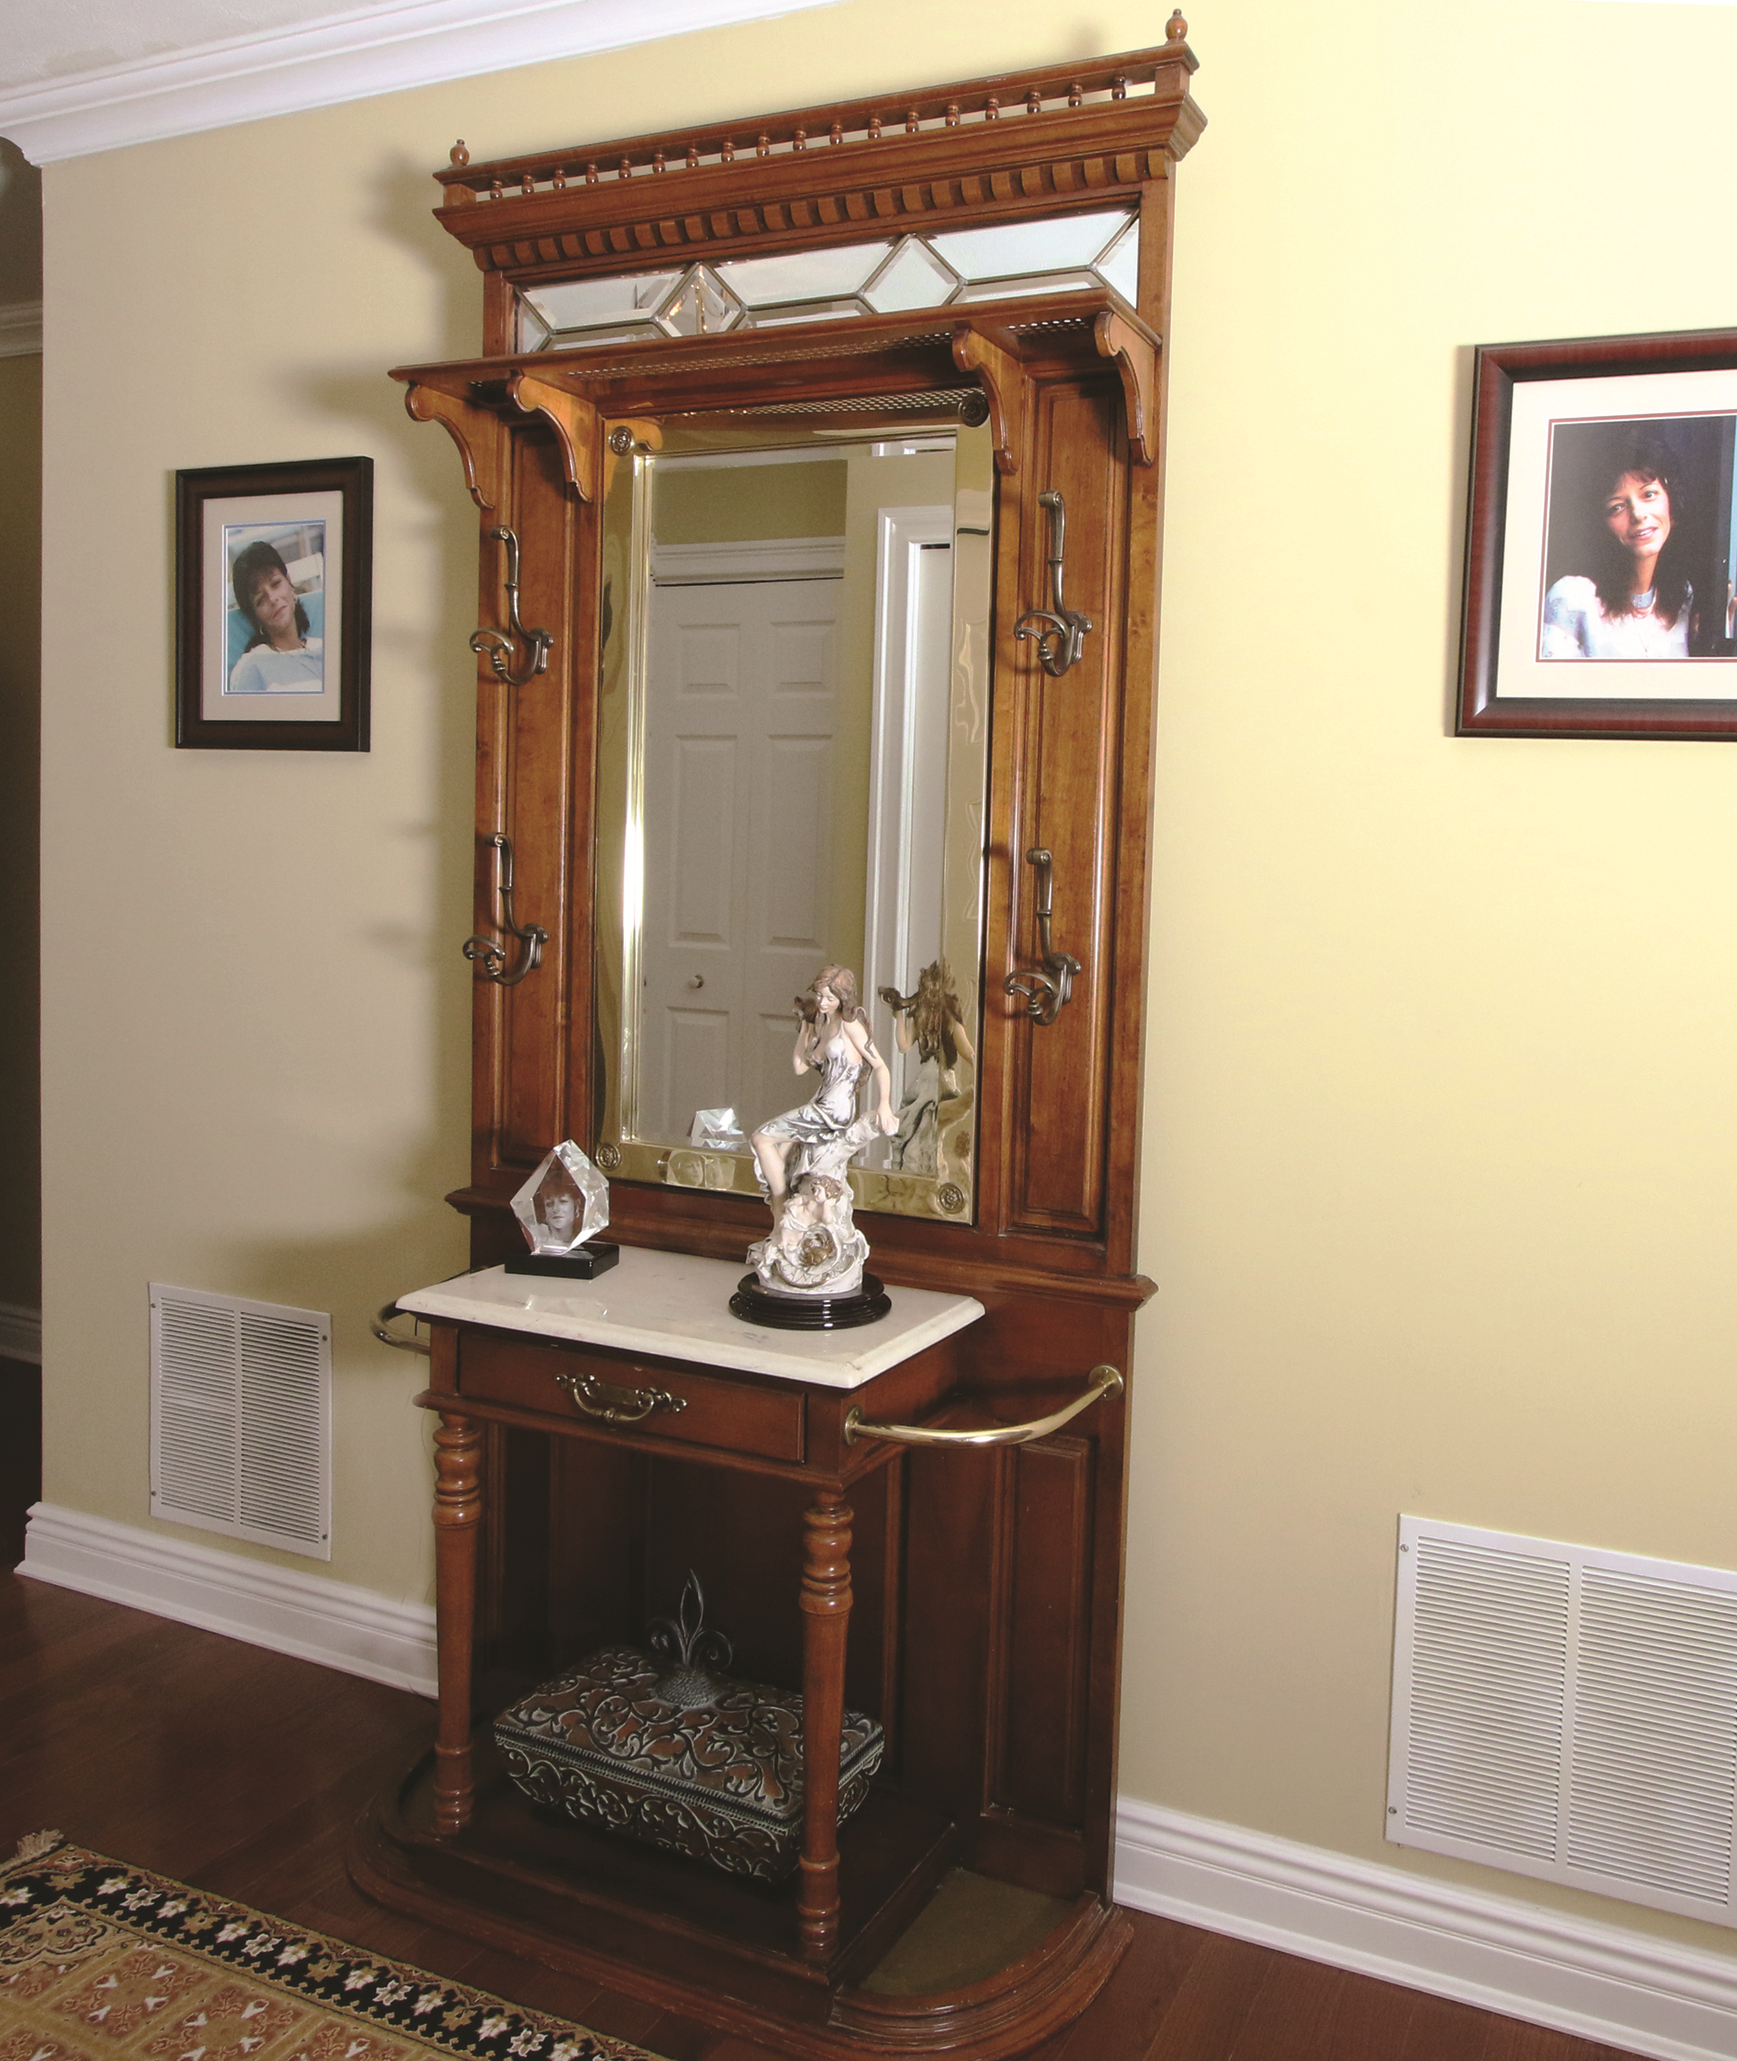 Less is more in this small entry.  Antique hall rack provides a warm yet uncluttered welcome.